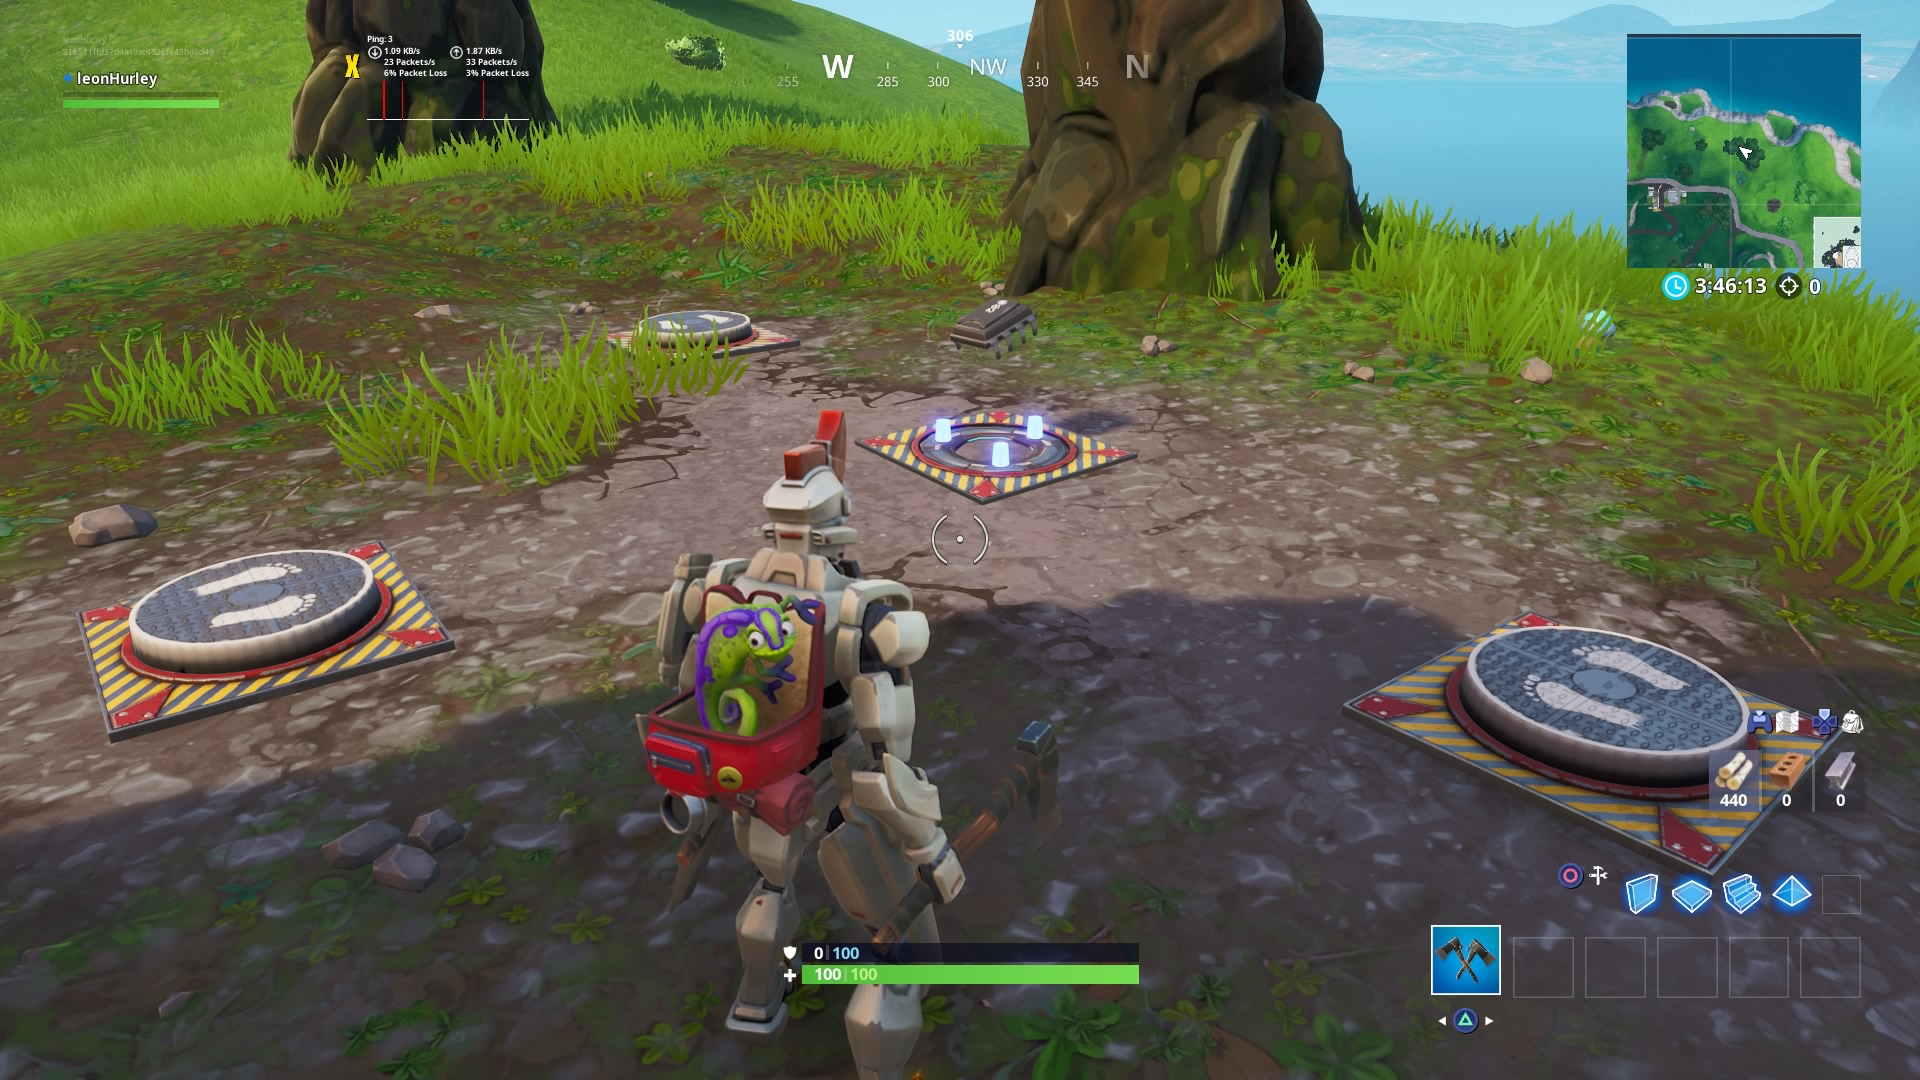 Fortnite Fortbyte 82 involves a pressure plate puzzle NW of